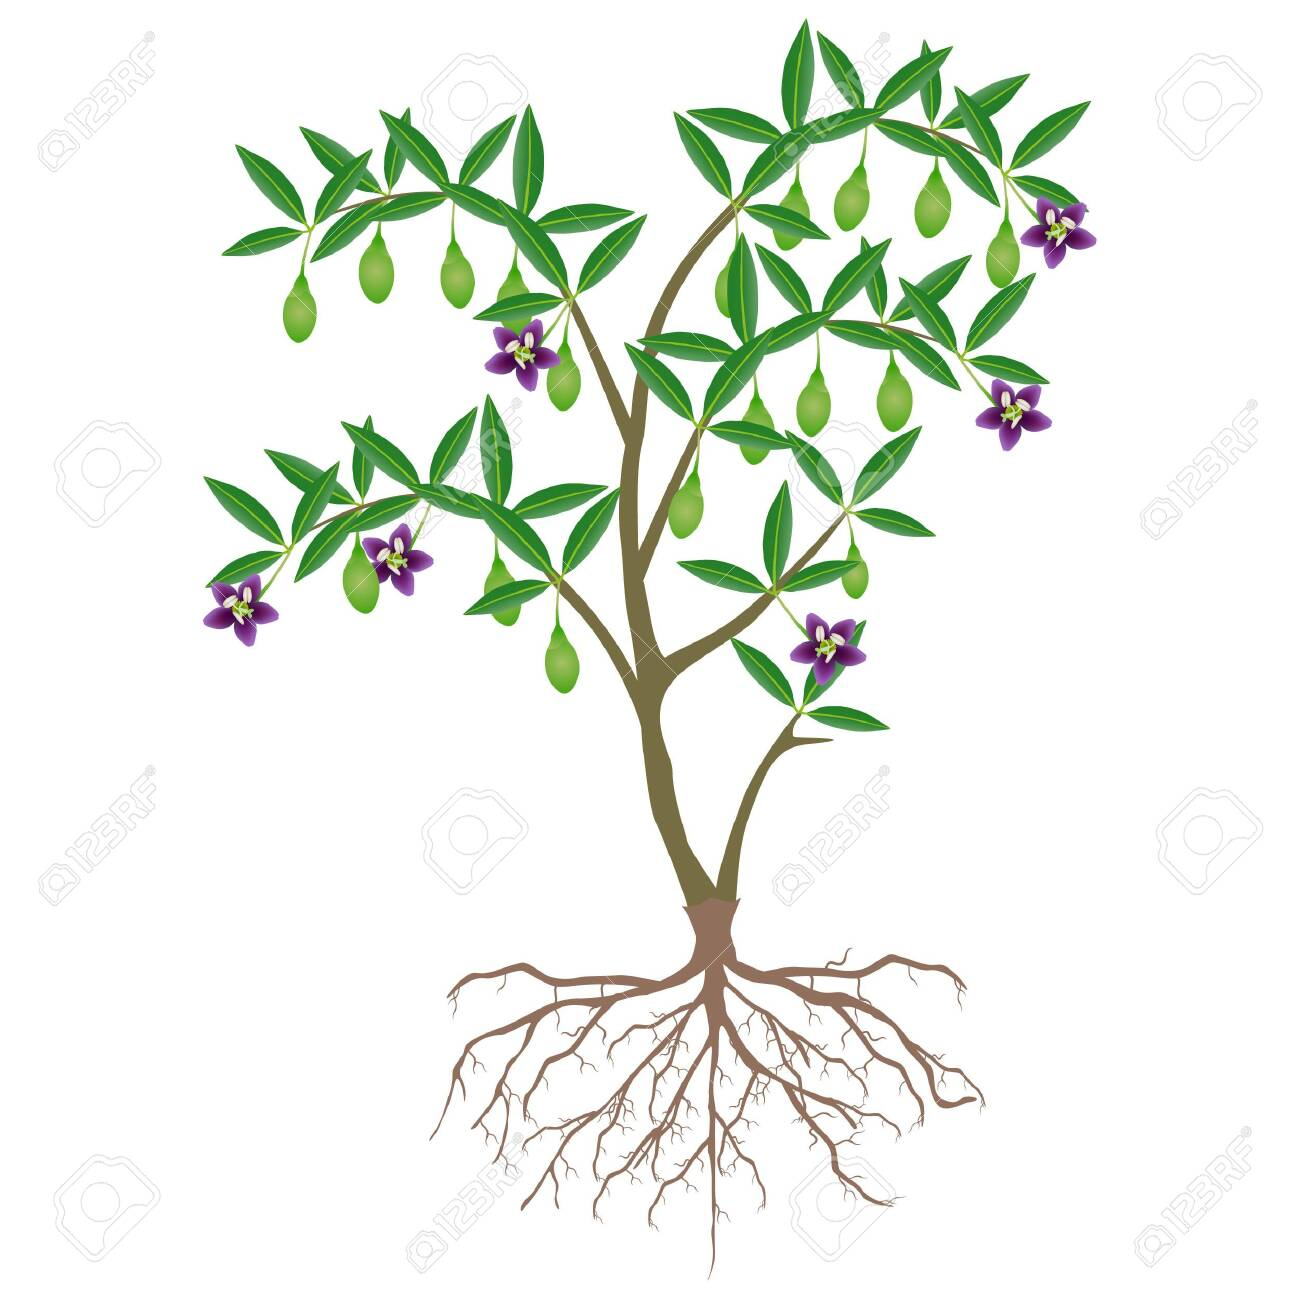 Goji Berry Plant With Unripe Fruit And Flowers Royalty Free